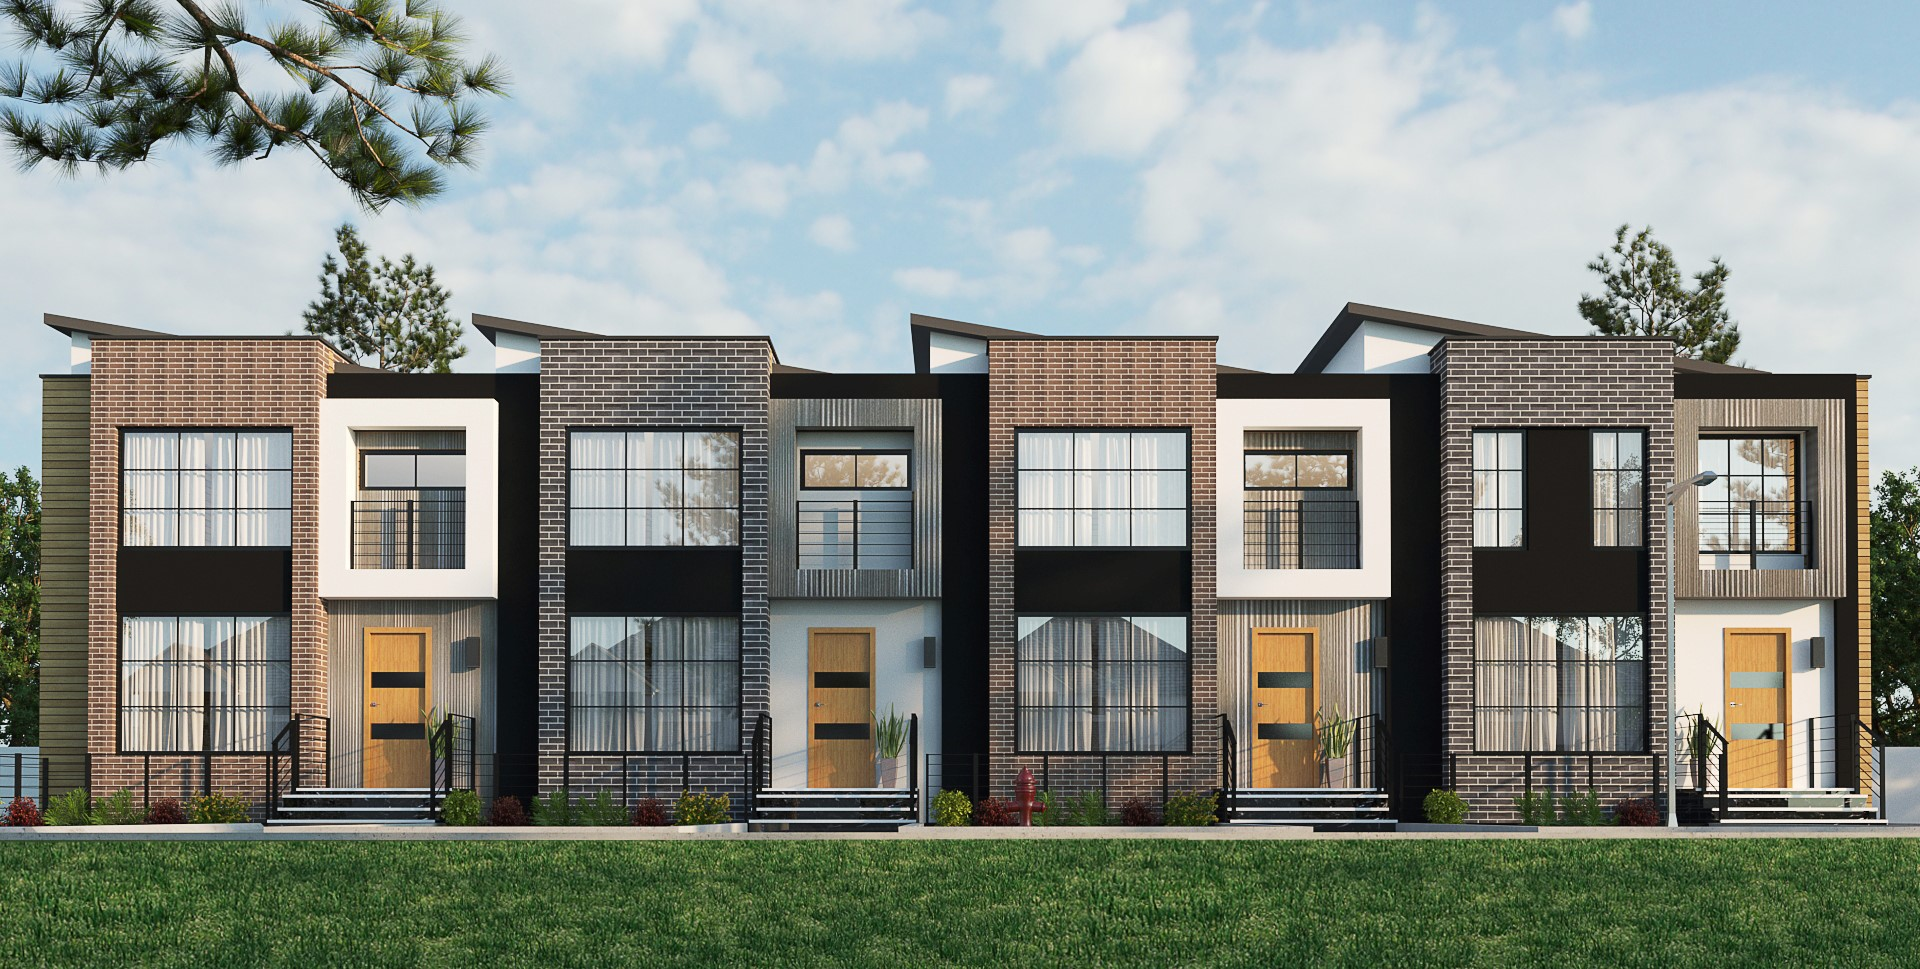 THE TARMAC TOWNHOMES - at Blatchfordstarting at 499klive on the best lots